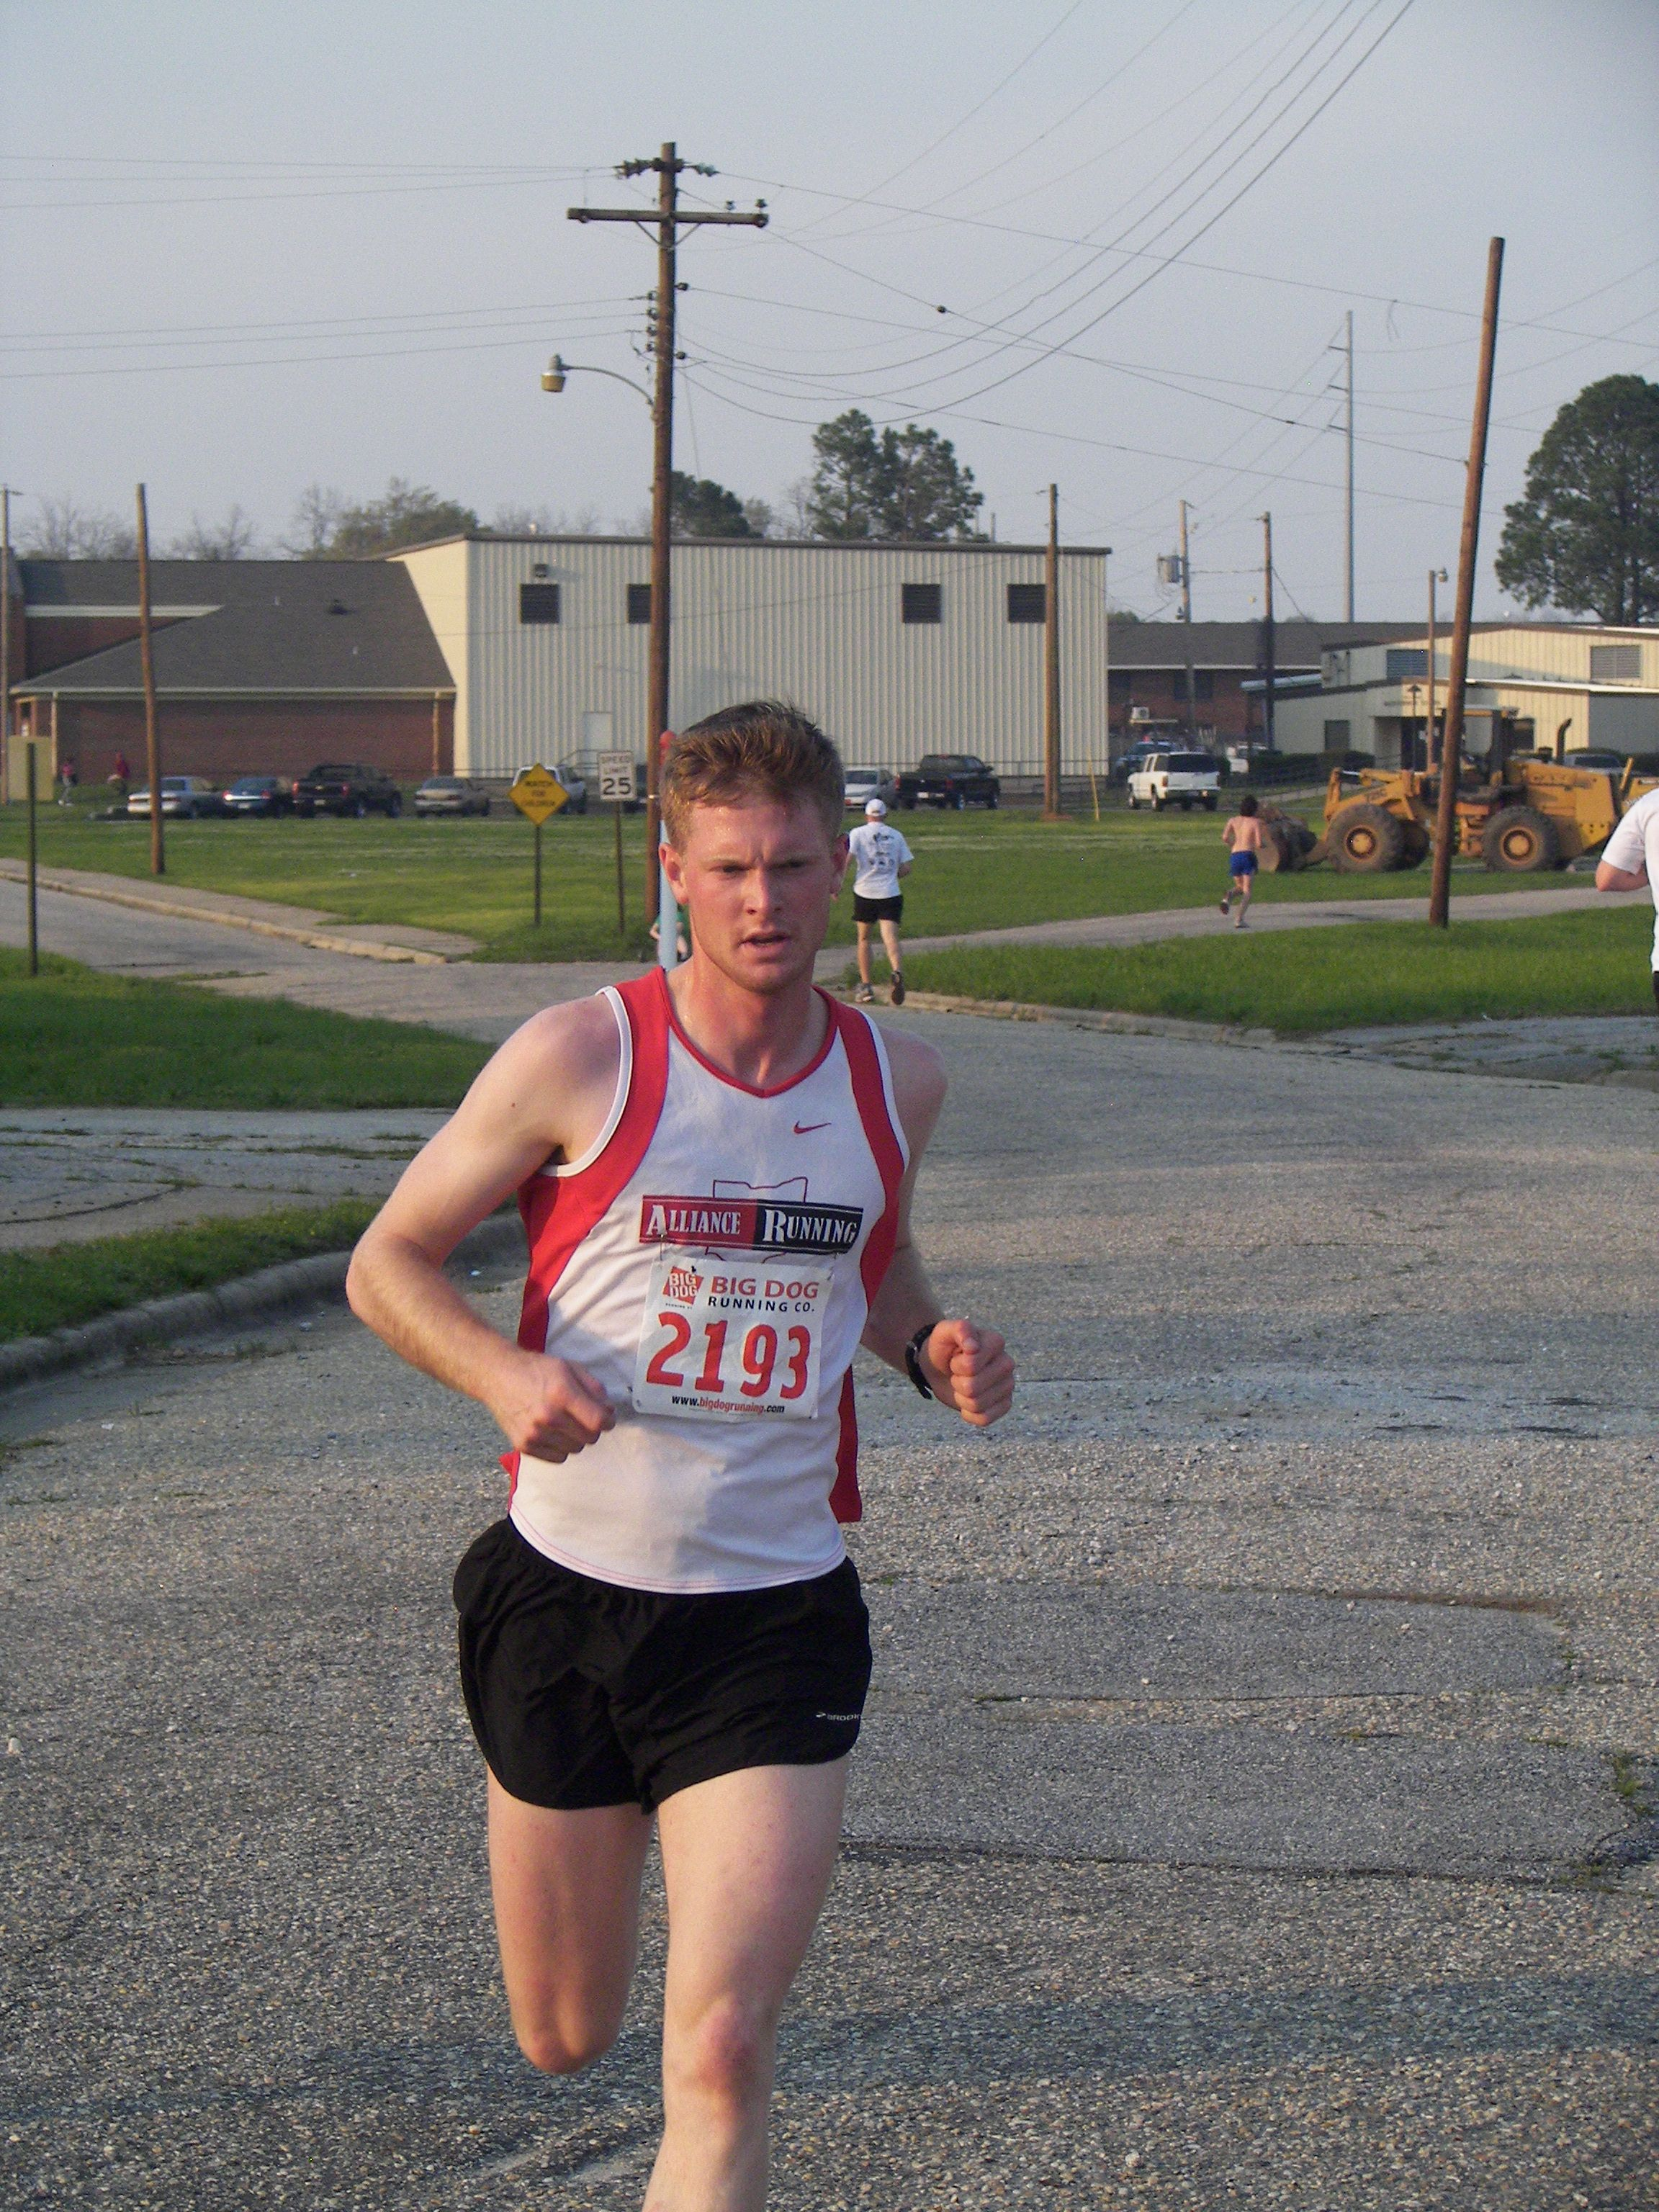 2012 St. Paddy's 5K Winner, Jacob Enke. Jacob finished in 16:32!